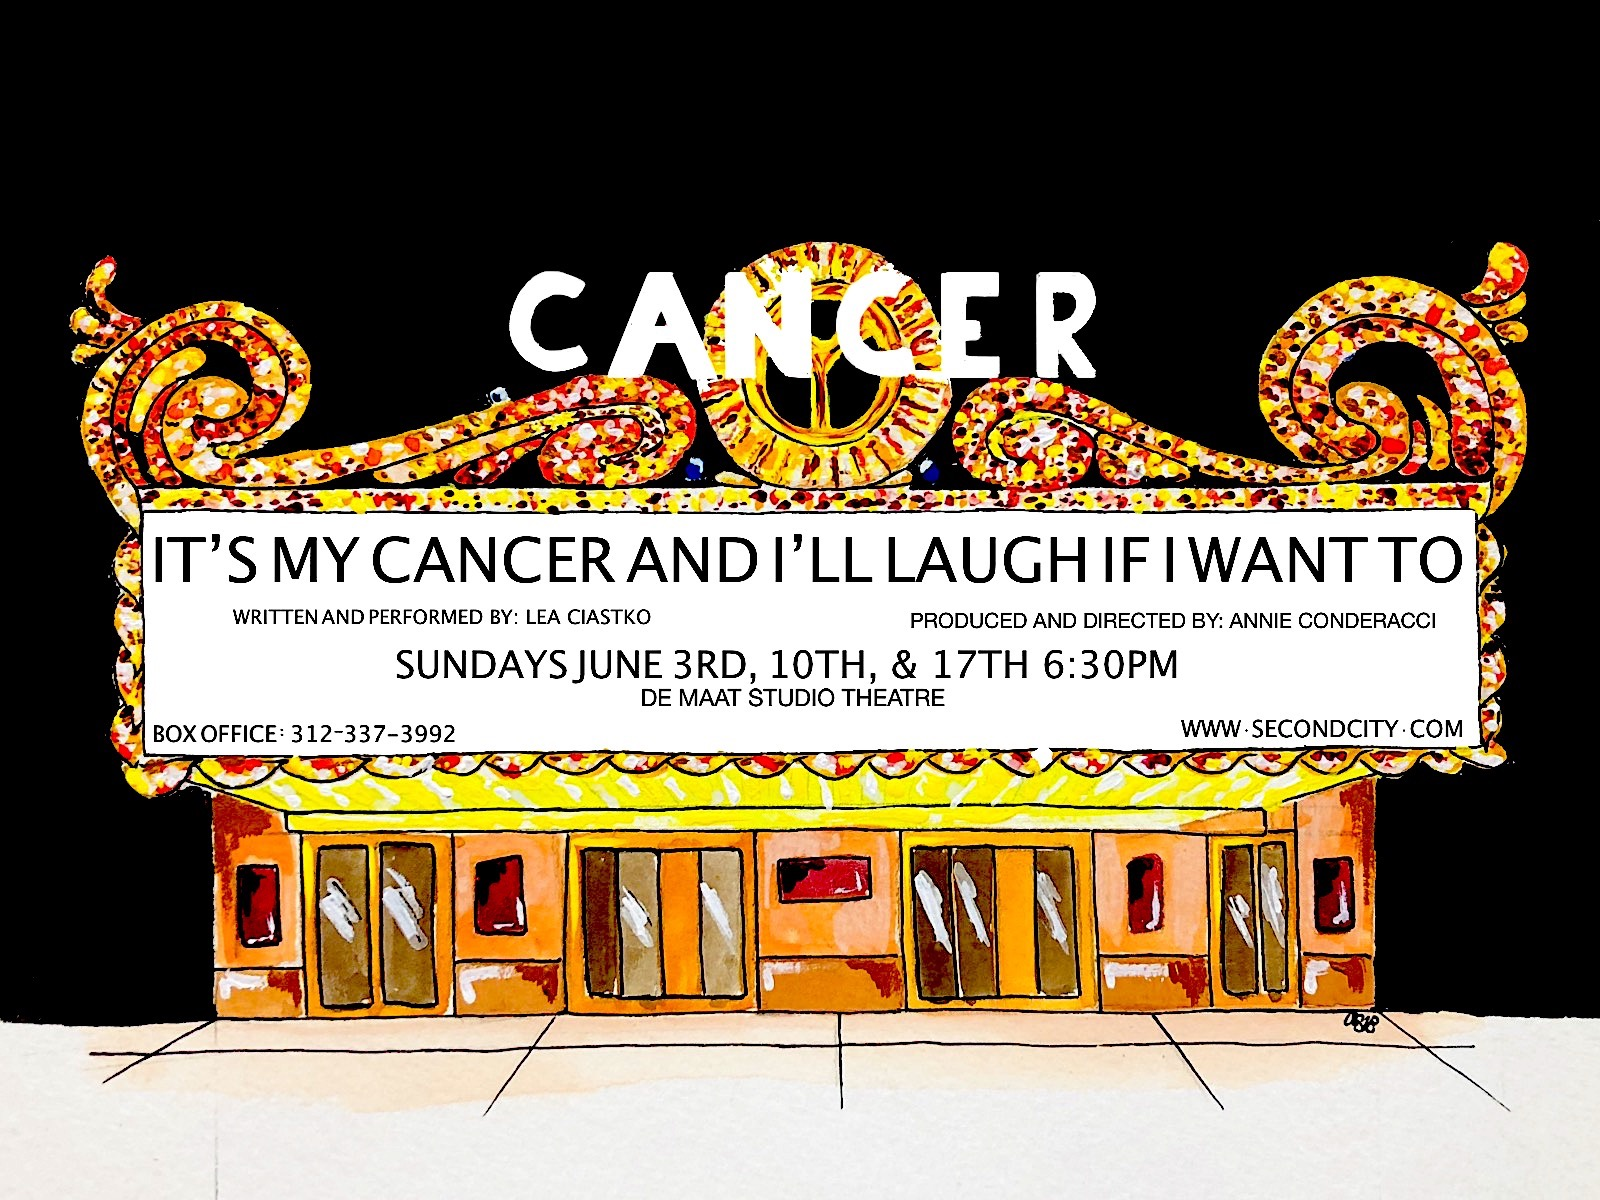 It's My Cancer and I'll Laugh If I Want To